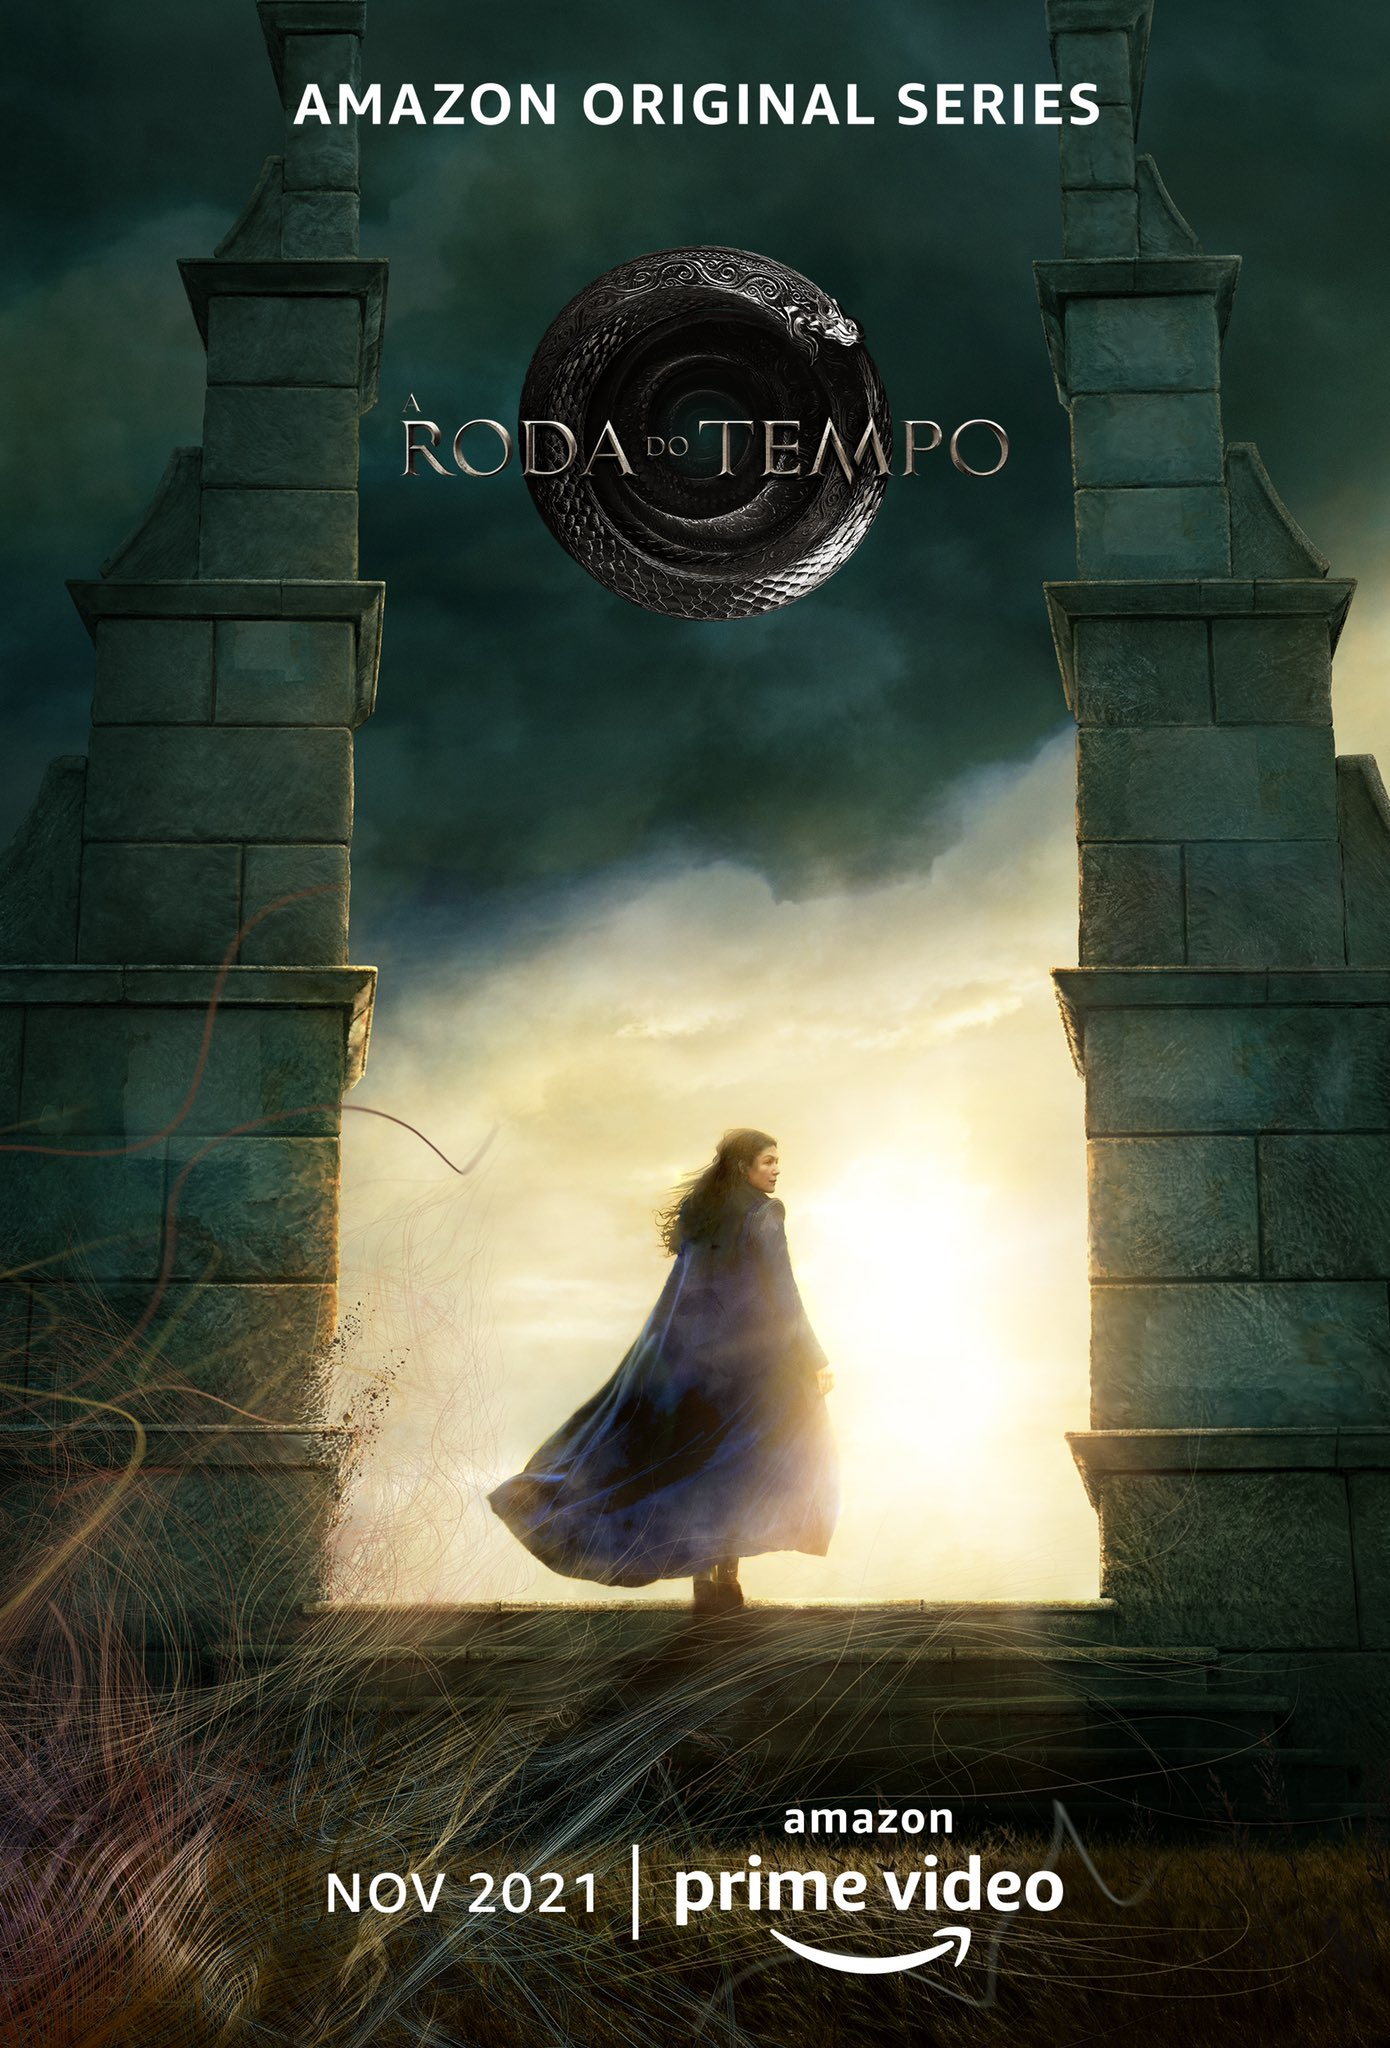 This is the Portugese version of the Wheel of Time poster.